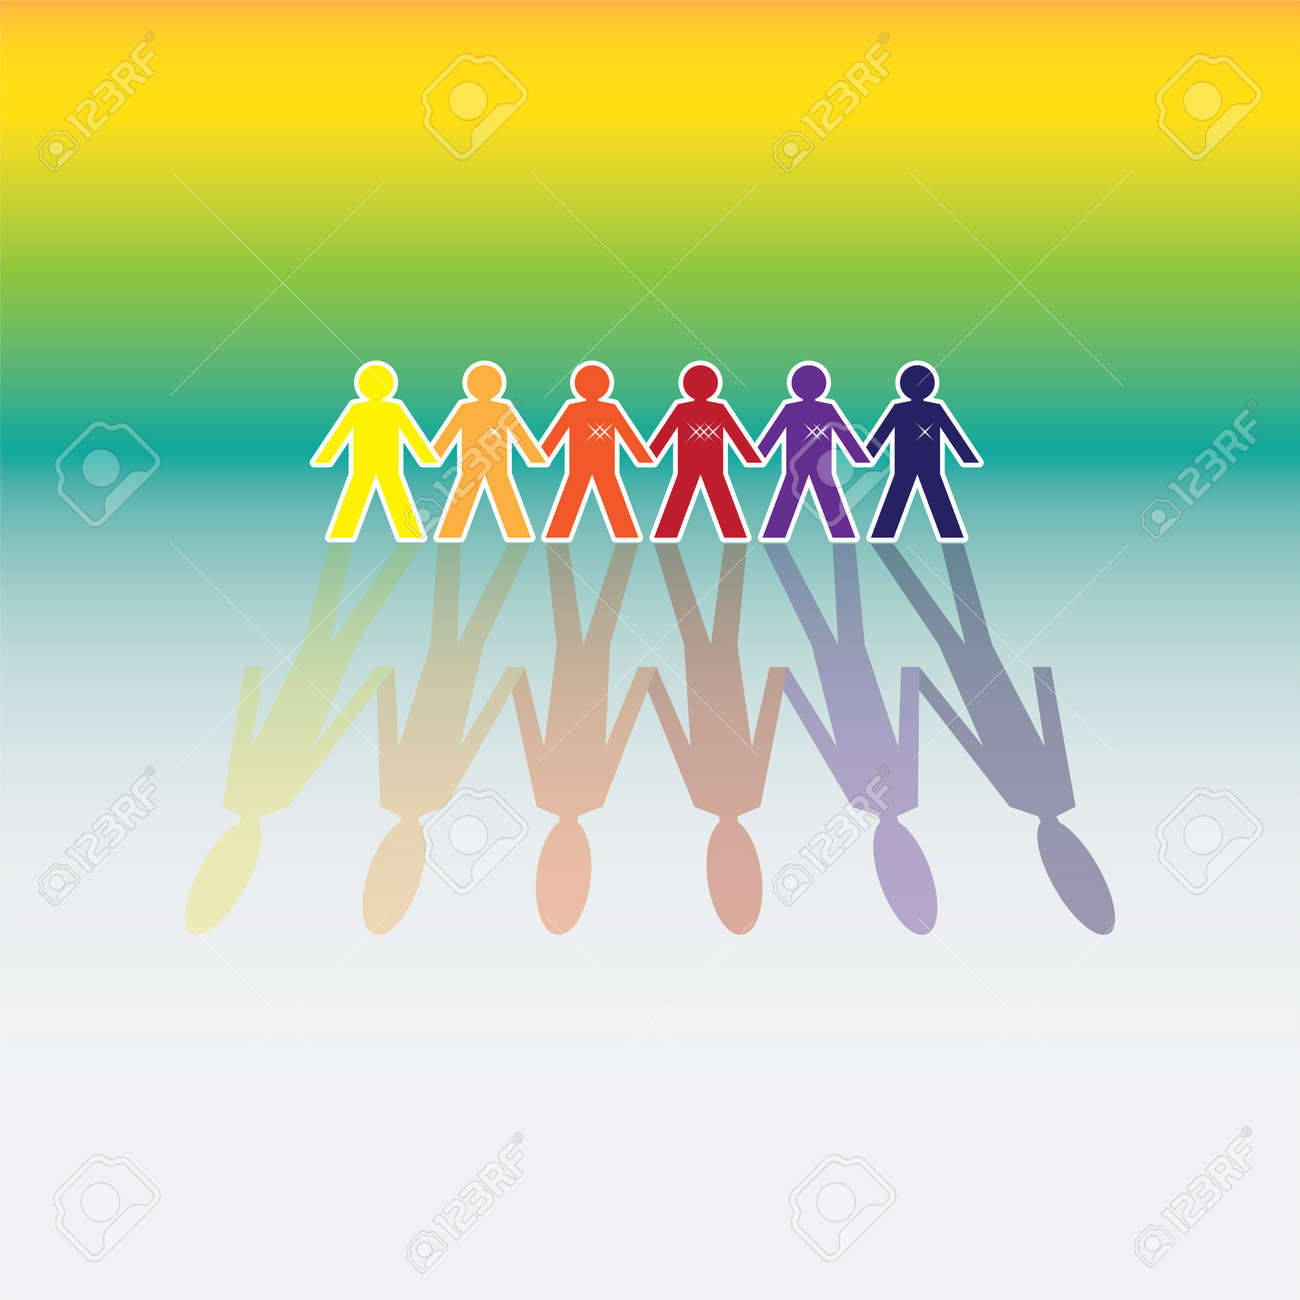 color human figures in a row - illustration Stock Vector - 11904577